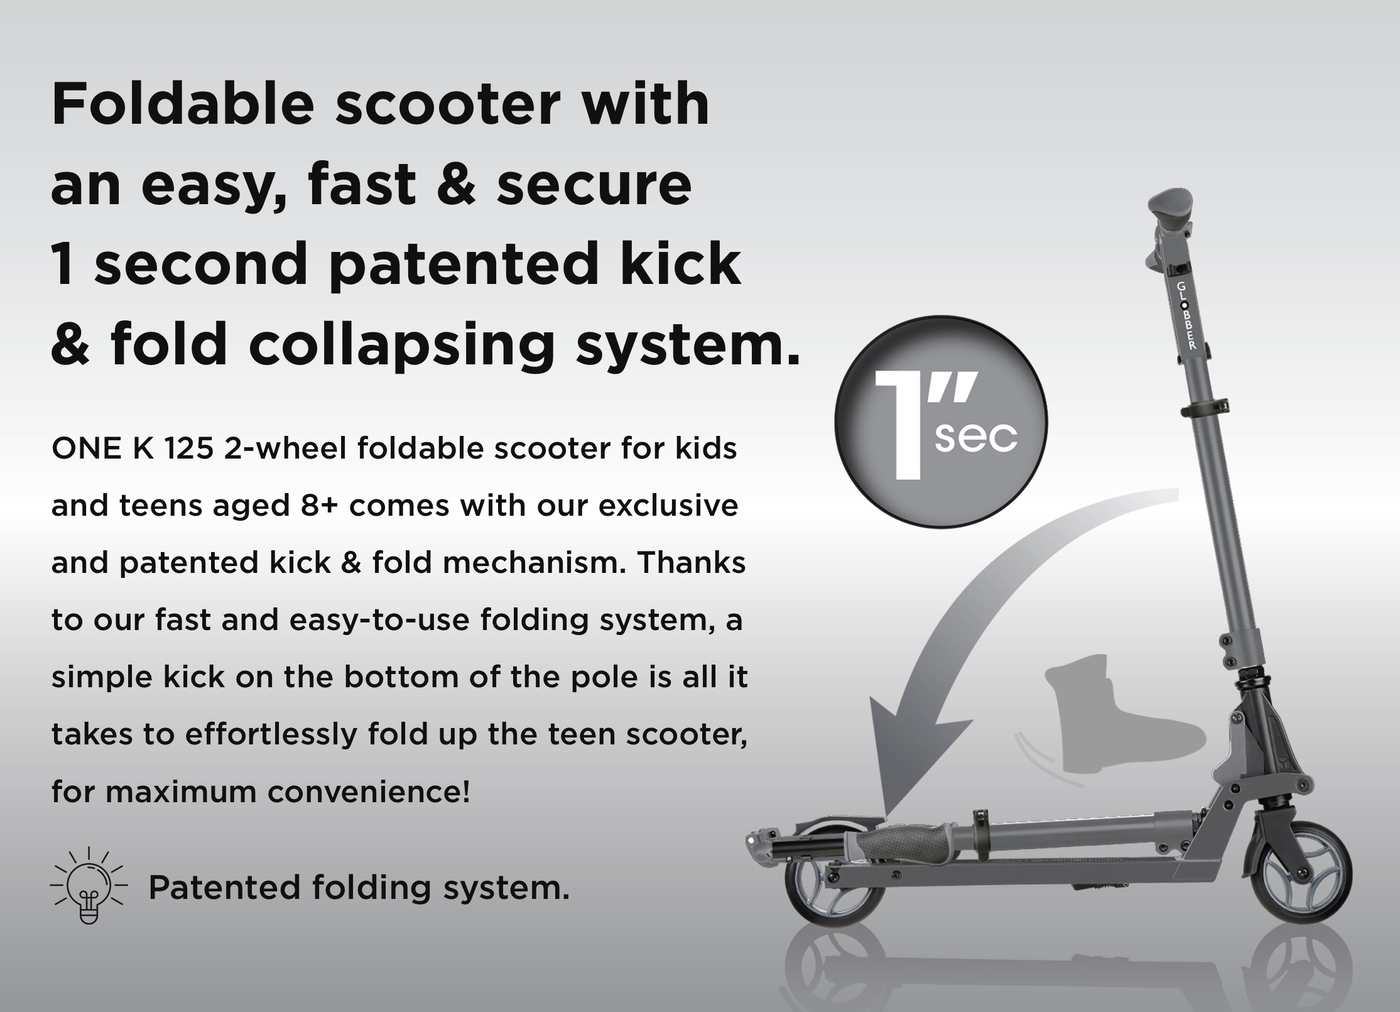 Foldable scooter with an easy, fast & secure 1 second patented kick & fold collapsing system. ONE K 125 2-wheel foldable scooter for kids and teens aged 8+ comes with our exclusive and patented kick & fold mechanism. Thanks to our fast and easy-to-use folding system, a simple kick on the bottom of the pole is all it takes to effortlessly fold up the teen scooter, for maximum convenience!